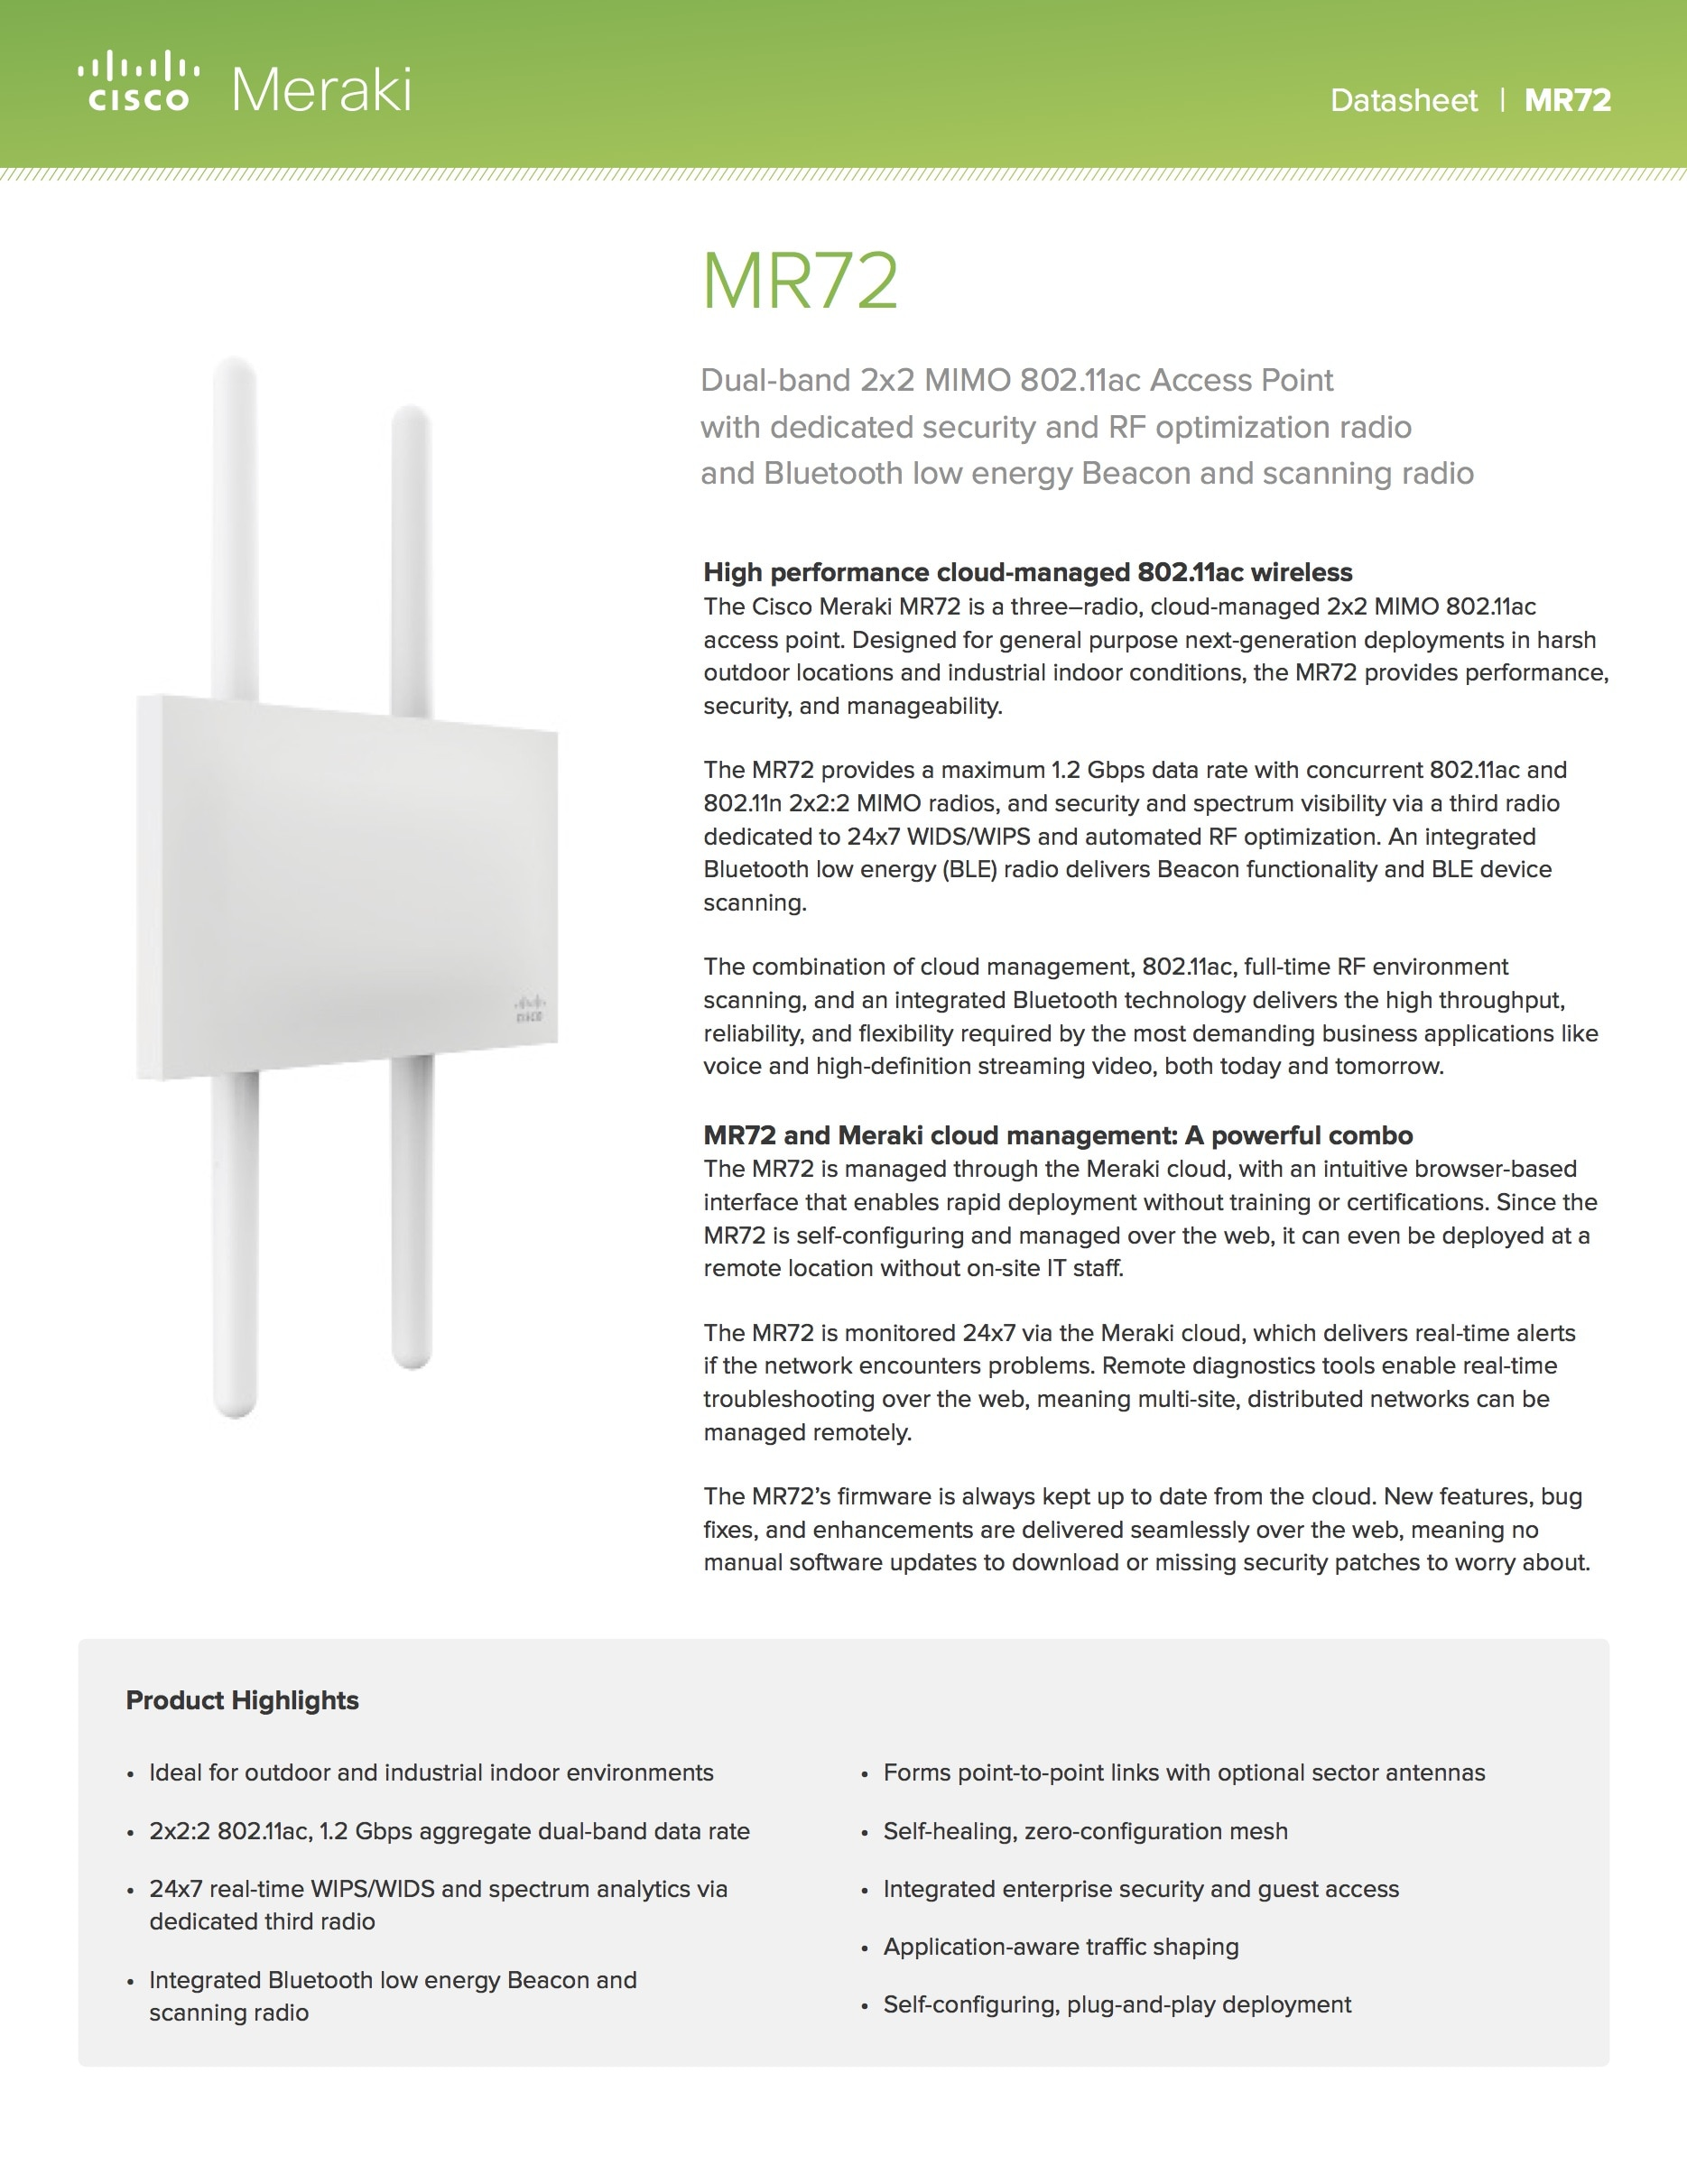 MR72 Datasheet (Archived)